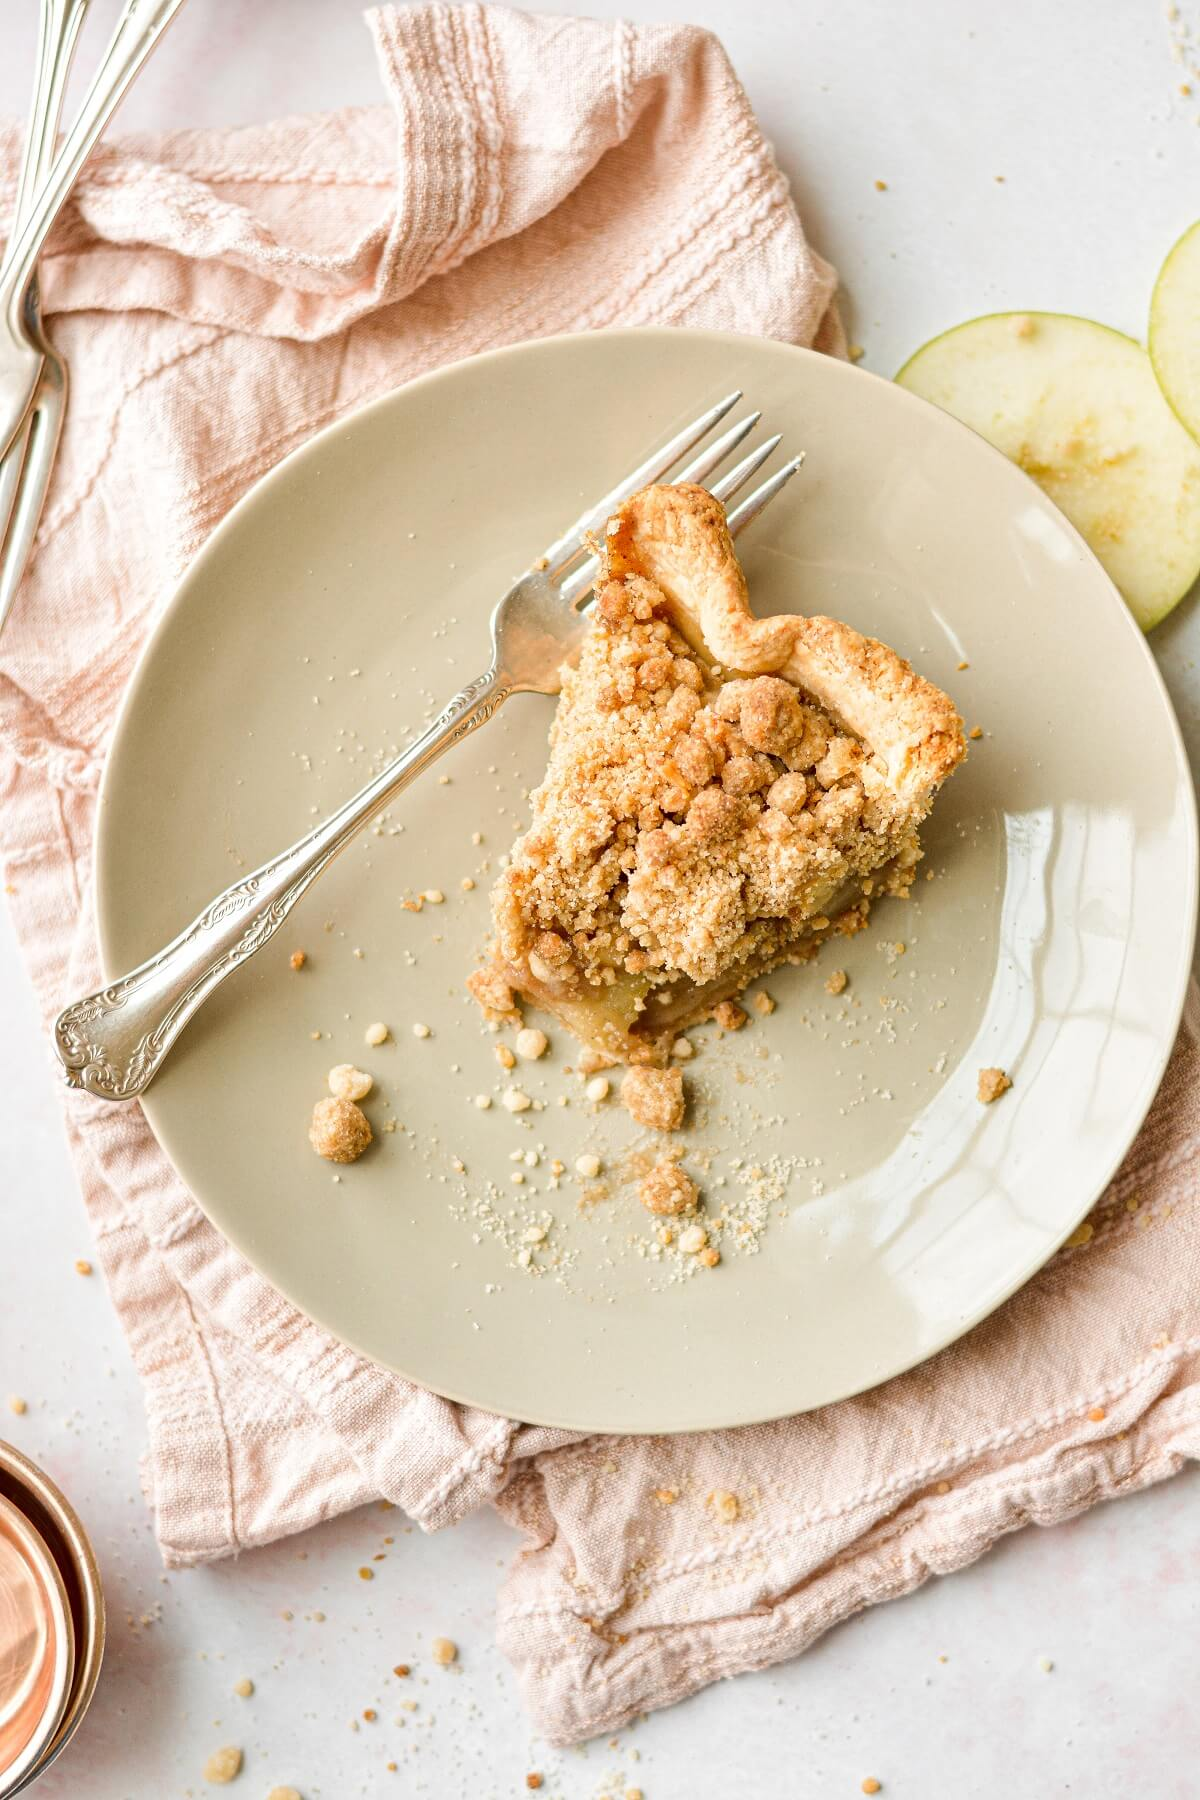 A slice of apple crumb pie on a beige plate, next to a pink linen napkin.